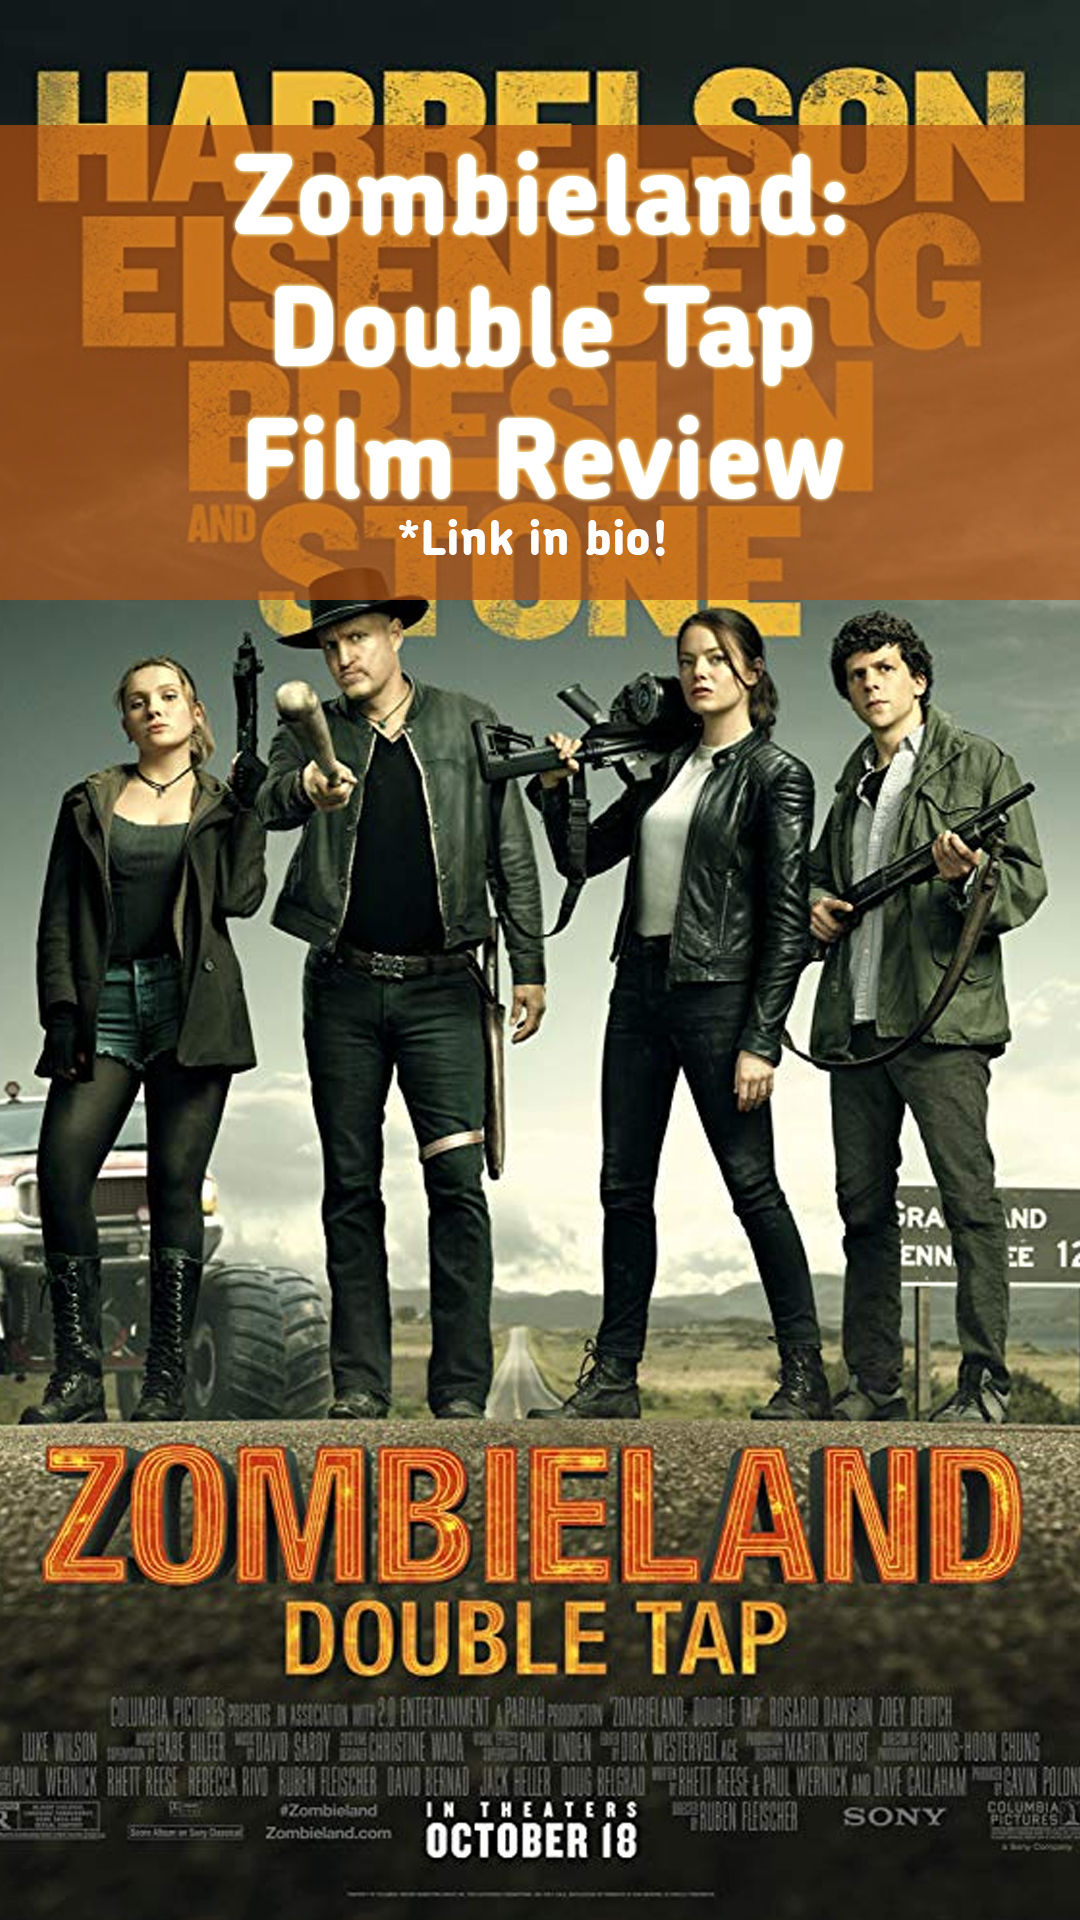 Zombieland: Double Tap Film Review